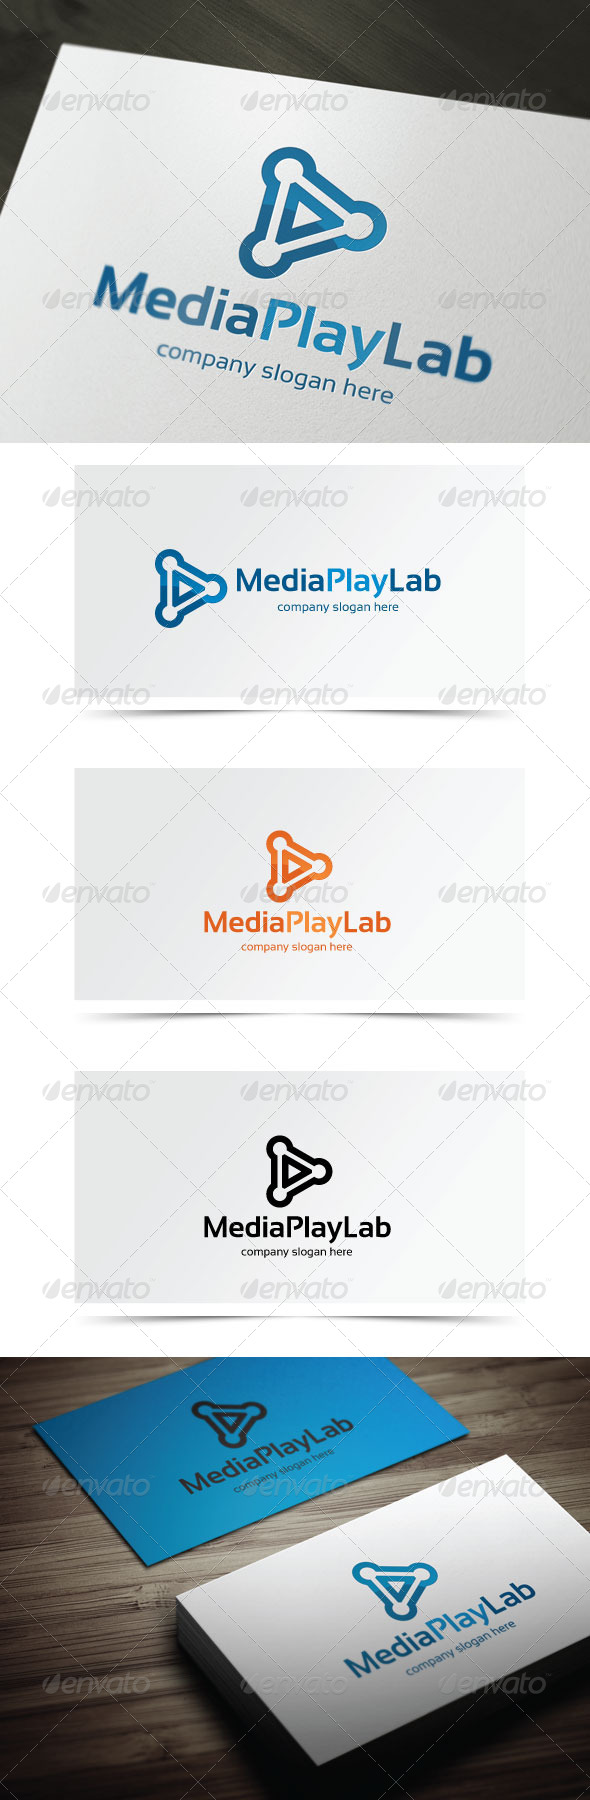 GraphicRiver Media Play Lab 5822253